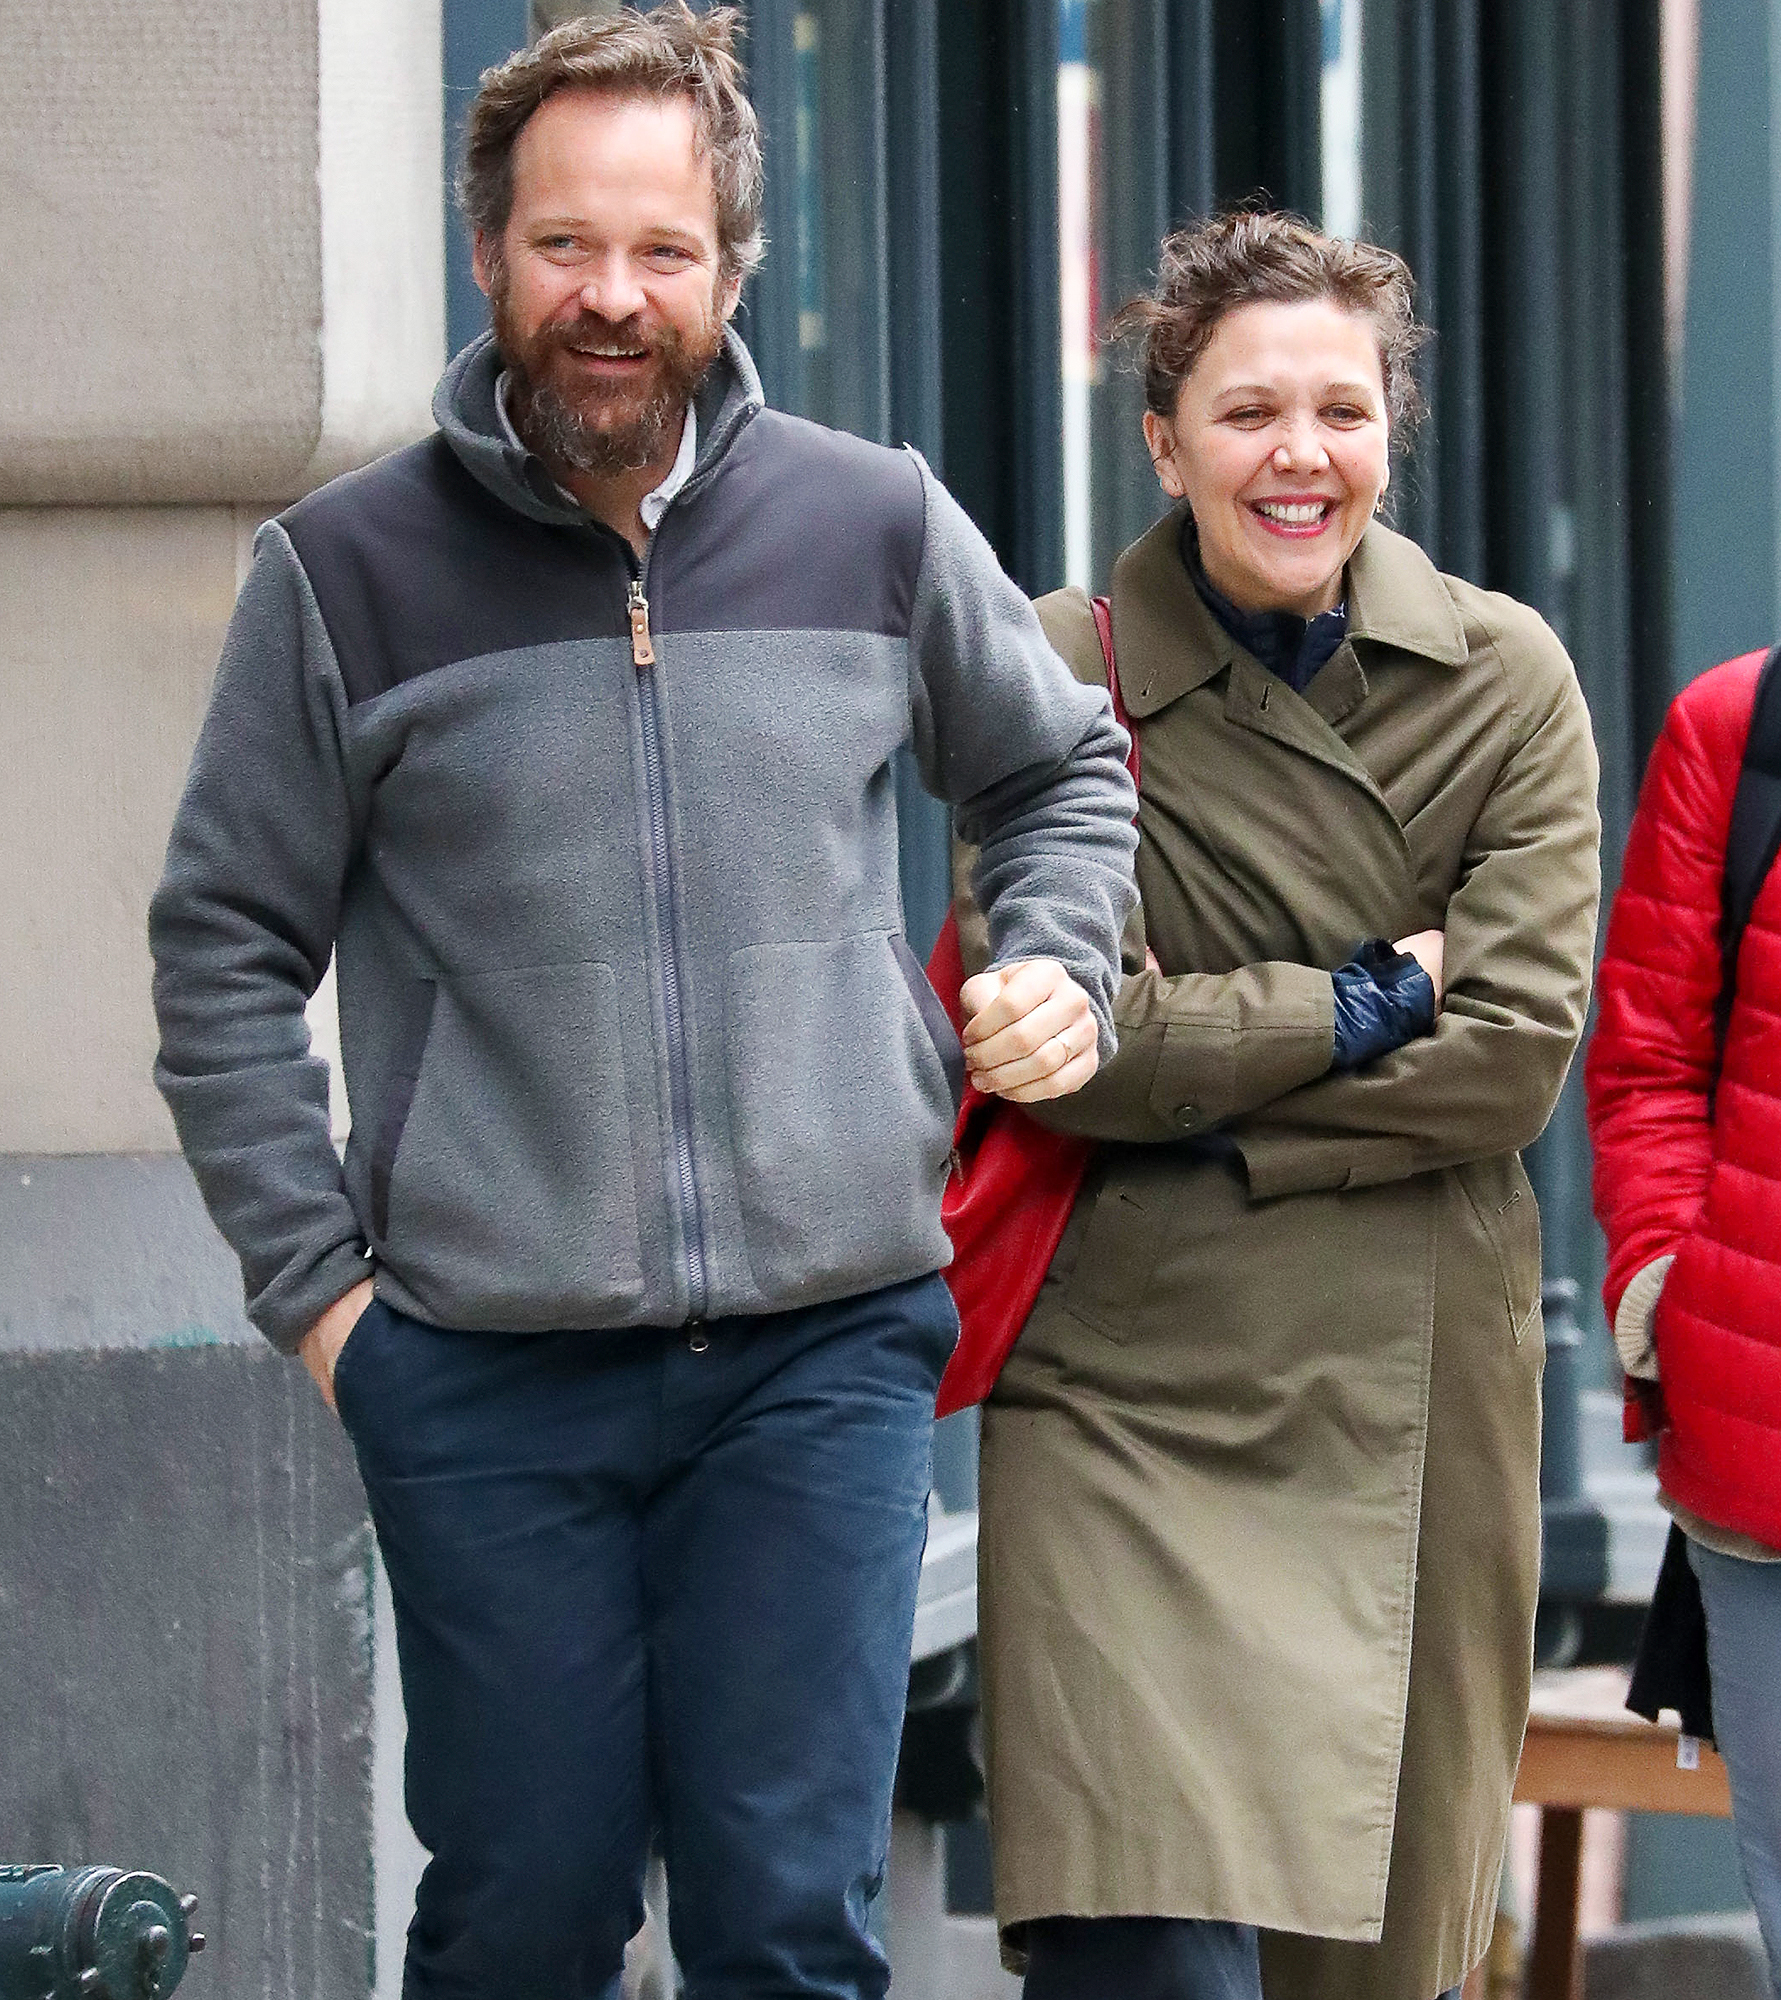 EXCLUSIVE: Maggie Gyllenhaal and Peter Sarsgaard Chat on the Street in NYC.